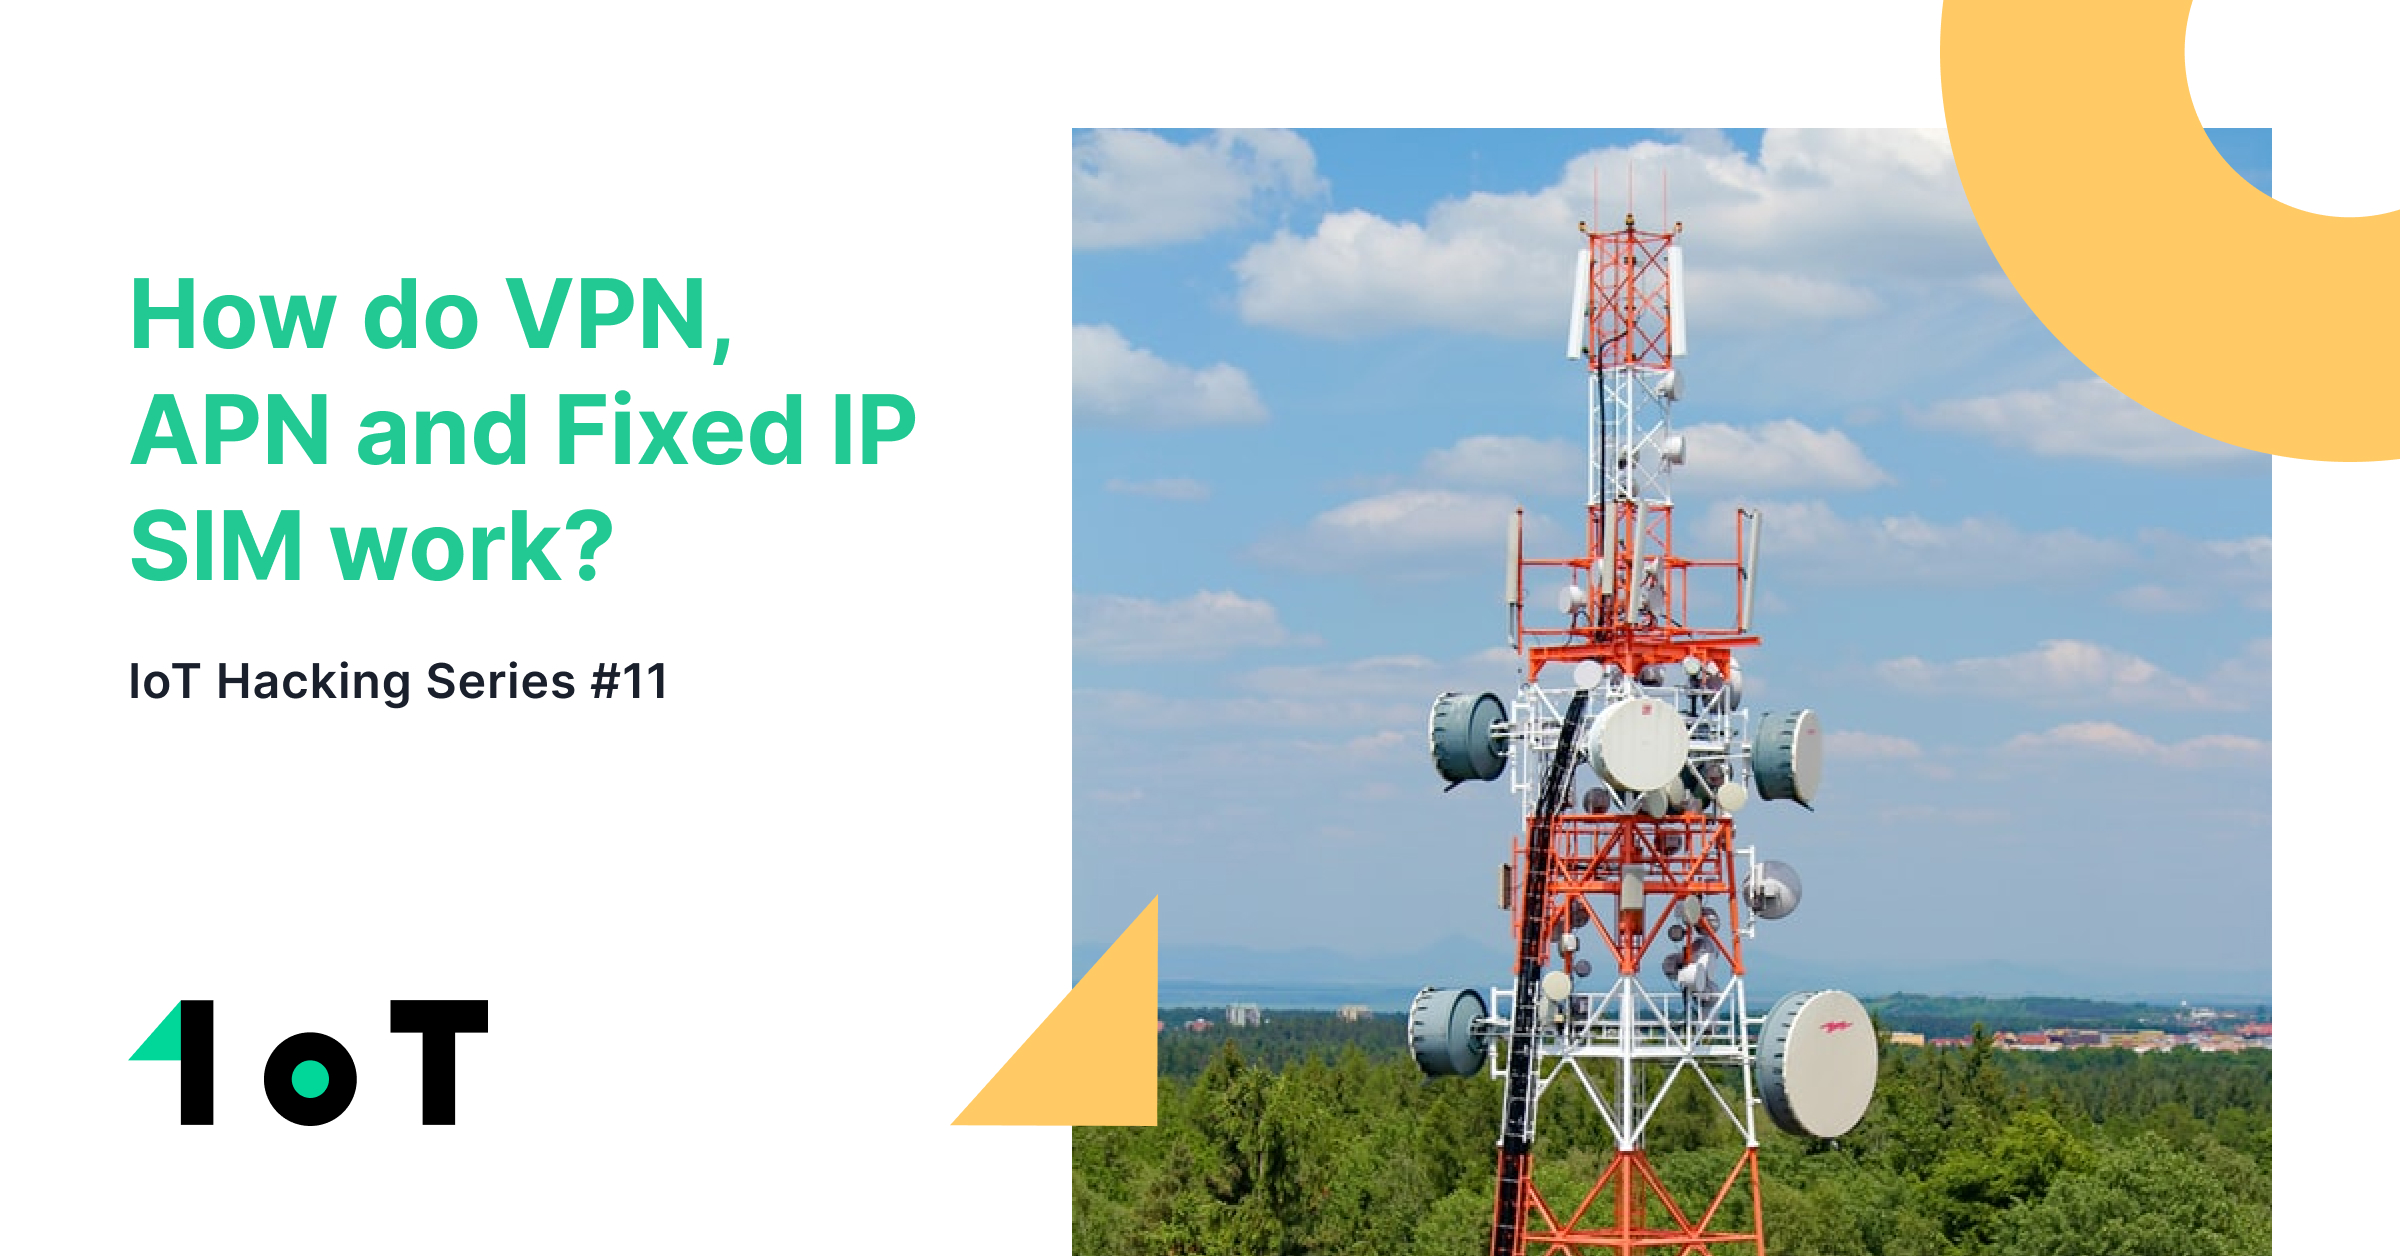 Article cover image for IoT Hacking Series #11: How do VPN, APN and Fixed IP SIM work?